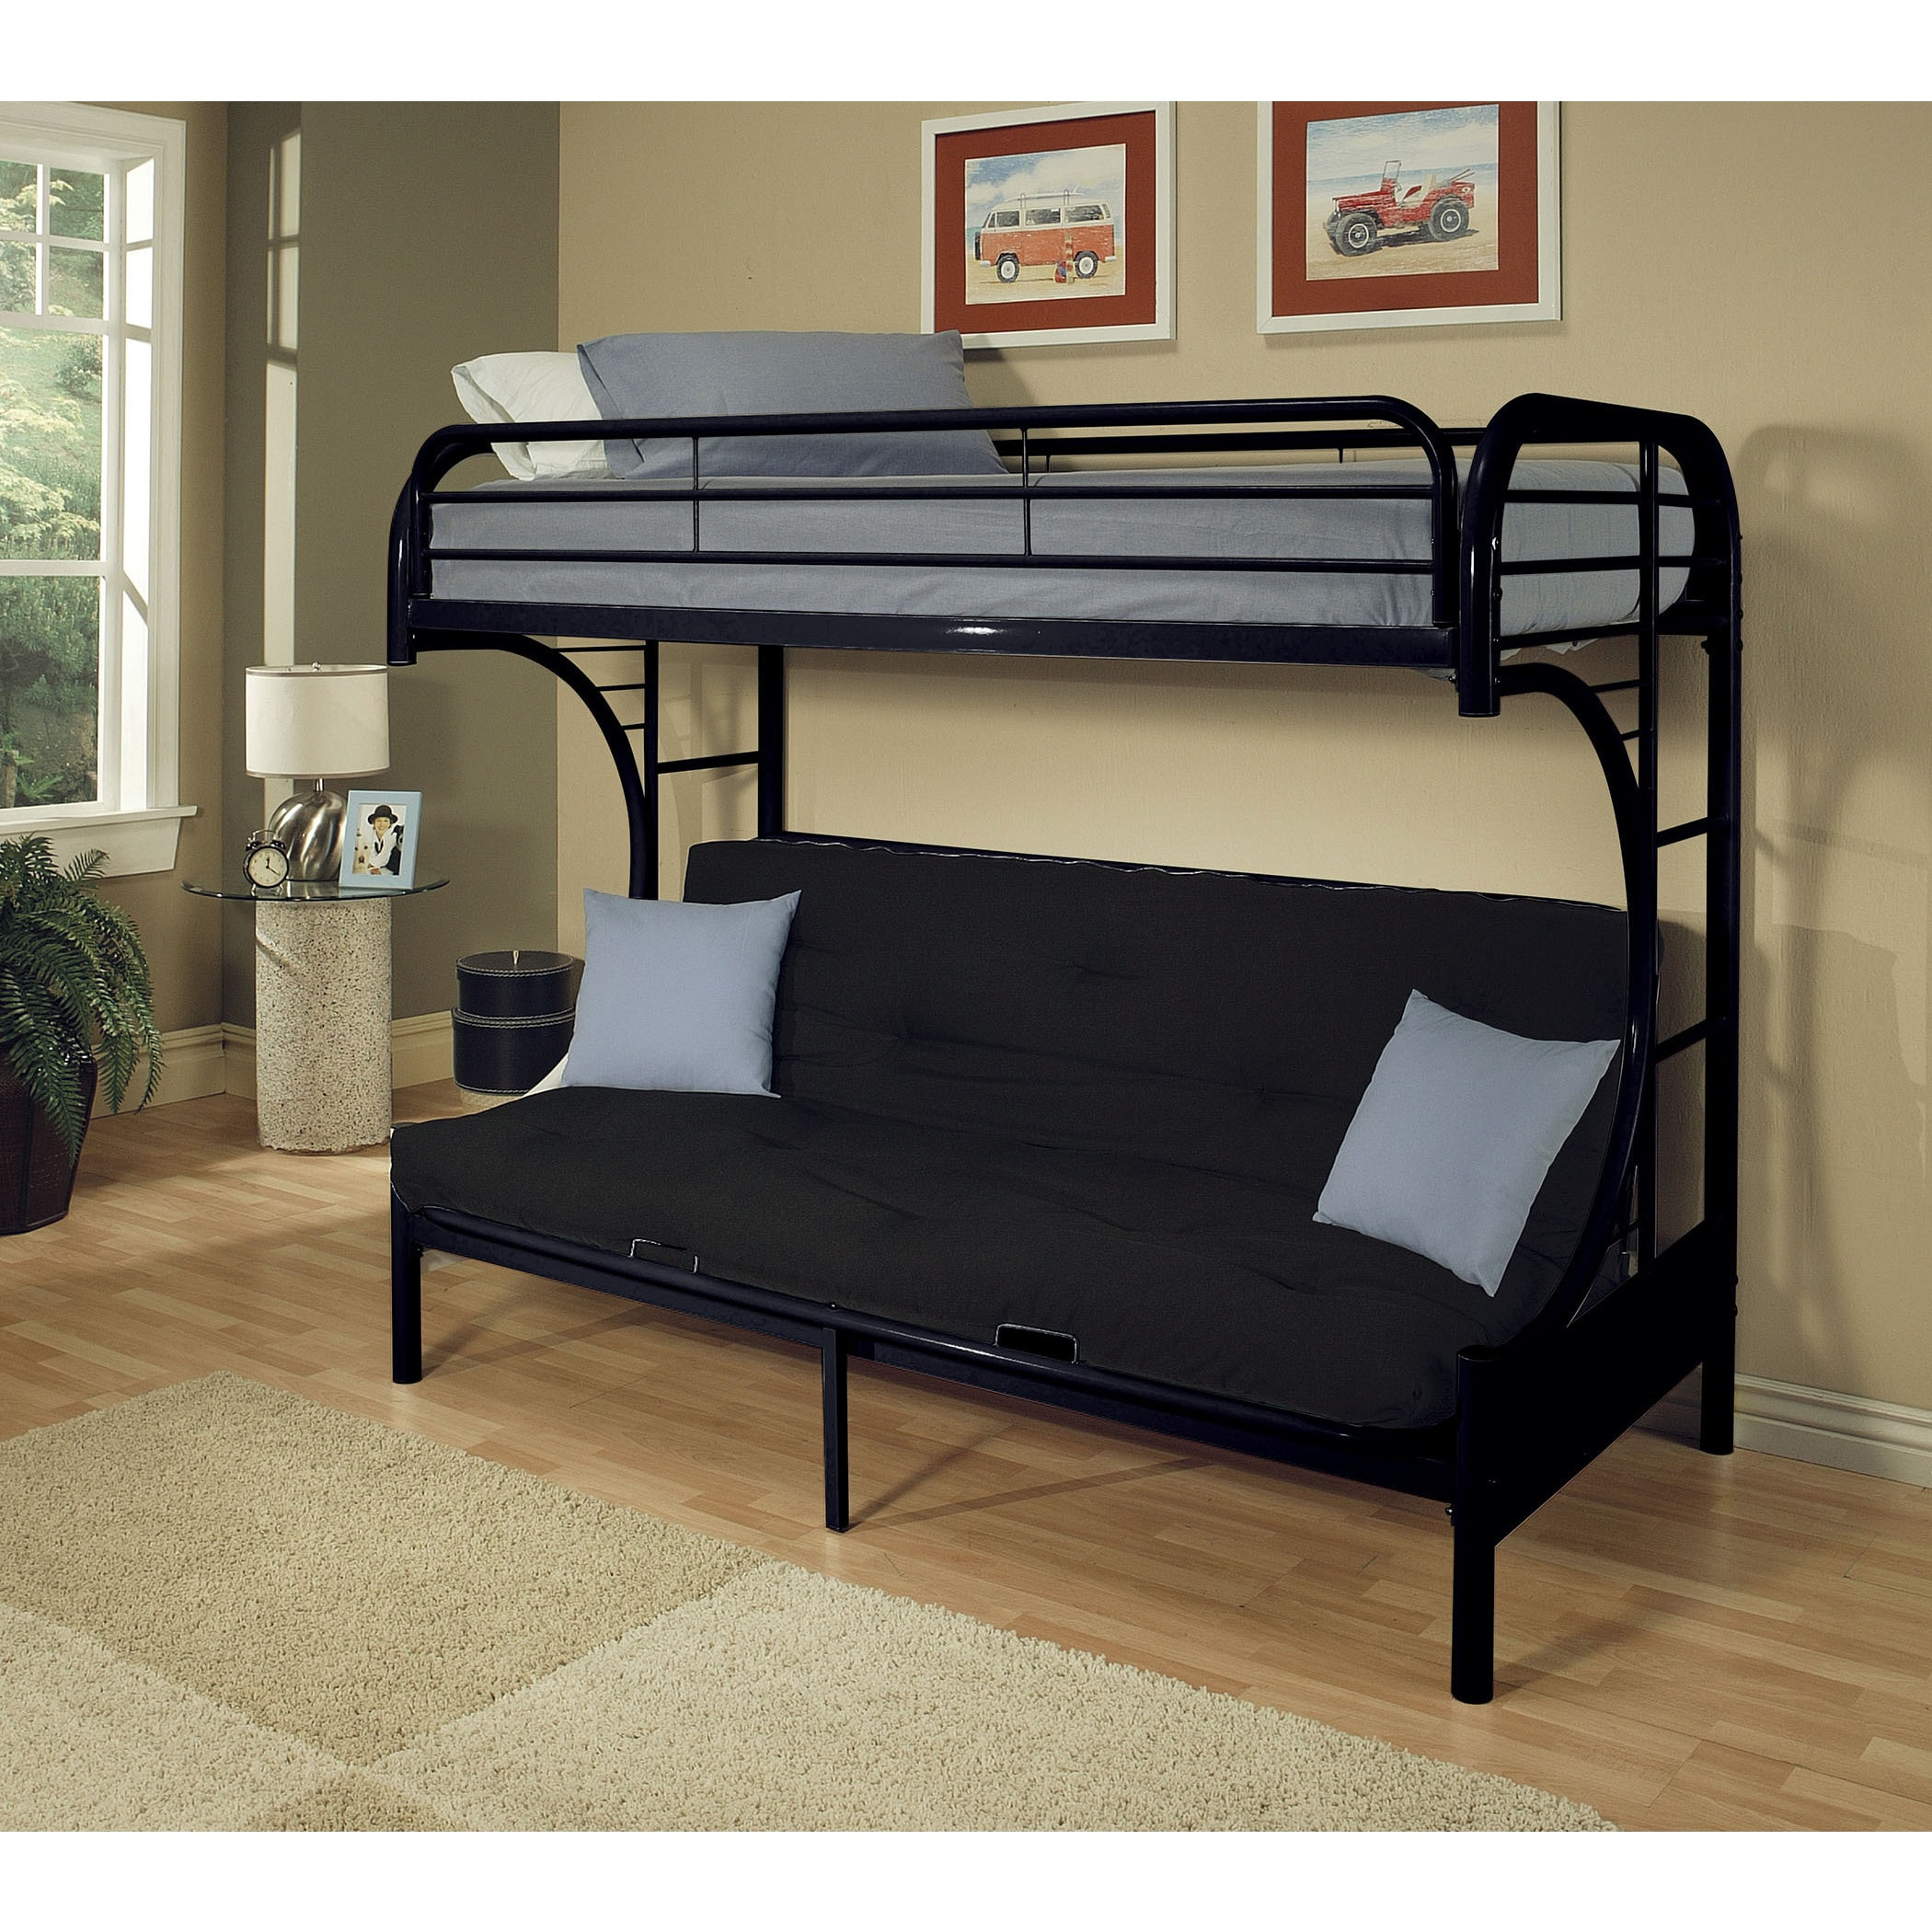 Eclipse Black Twin Xl Queen Futon Bunk Bed Free Shipping Today Com 12038644